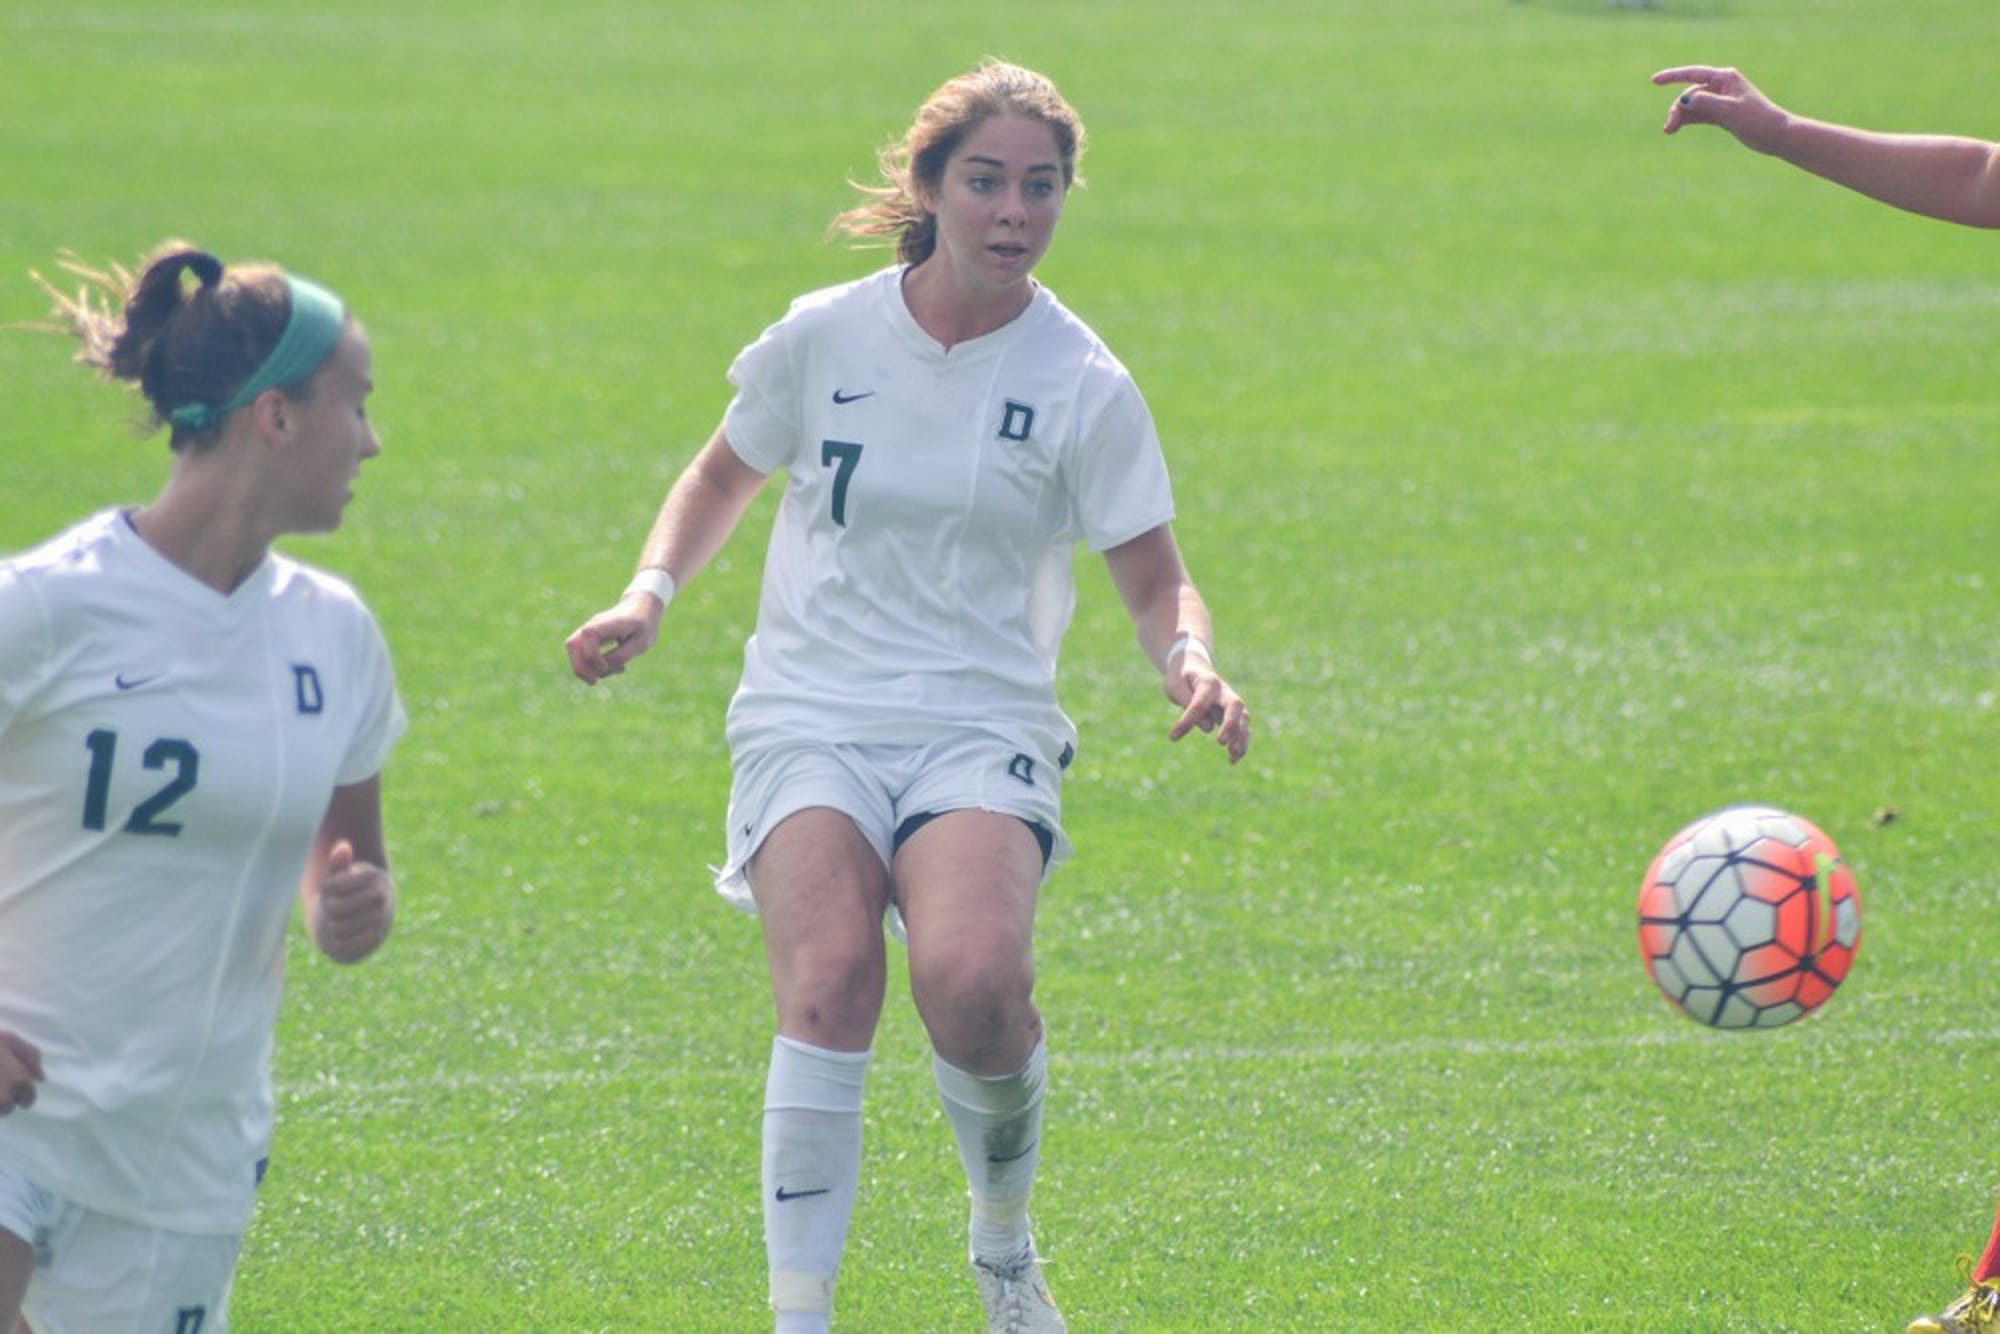 10-5-15-sports-womenssoccer2-elizamcdonough